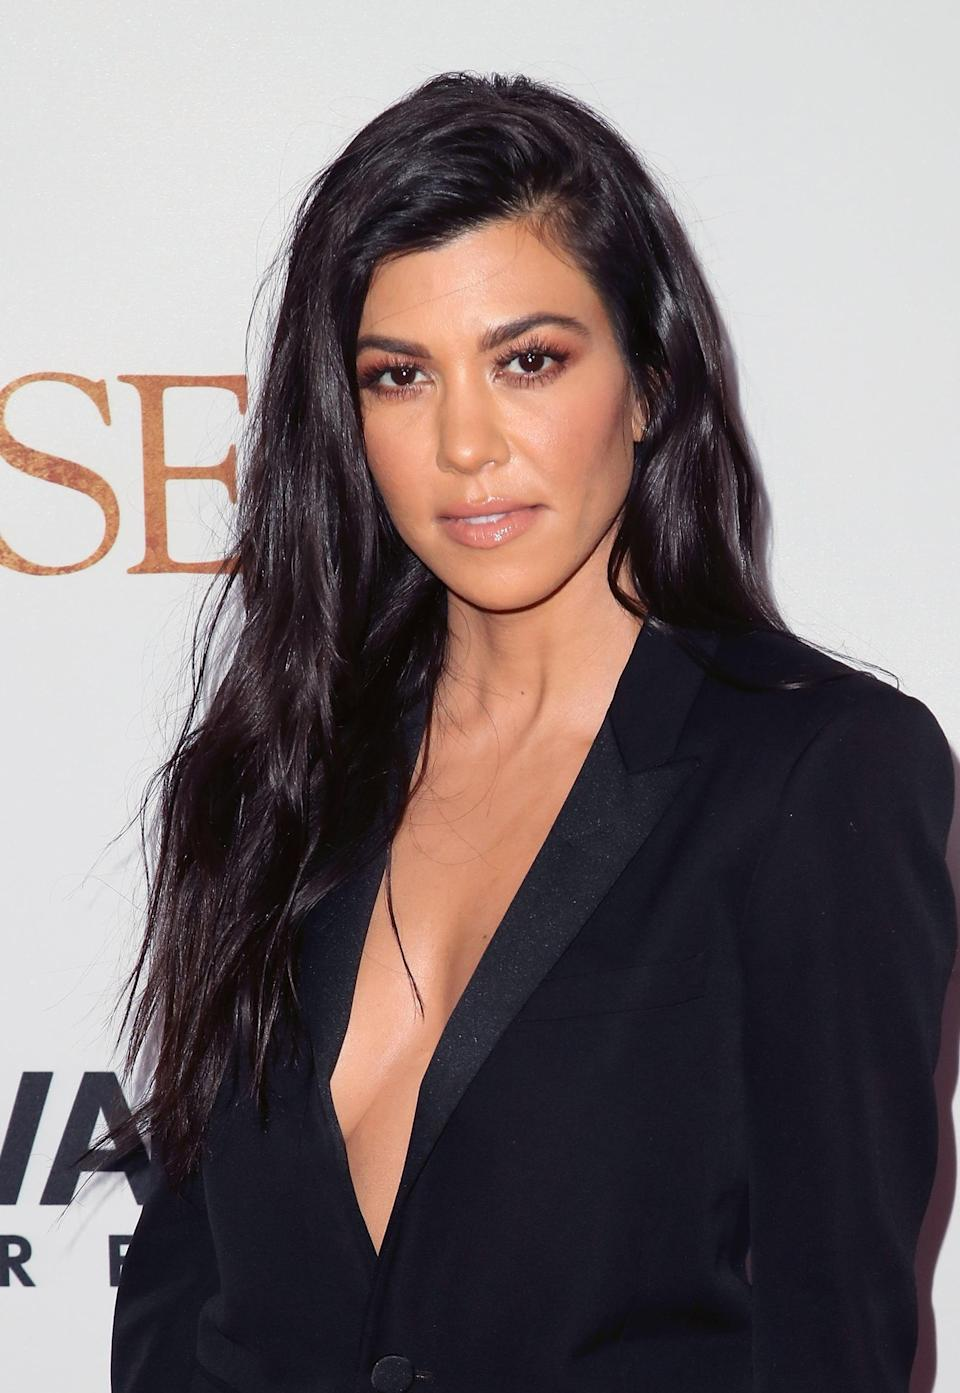 """<p>In 2021, Kourtney will likely continue to grow her multimedia lifestyle platform, <a href=""""http://poosh.com/"""" class=""""link rapid-noclick-resp"""" rel=""""nofollow noopener"""" target=""""_blank"""" data-ylk=""""slk:Poosh"""">Poosh</a>, which provides everything from beauty recommendations to parenting advice, as well as its own shop full of exclusive products. </p>"""